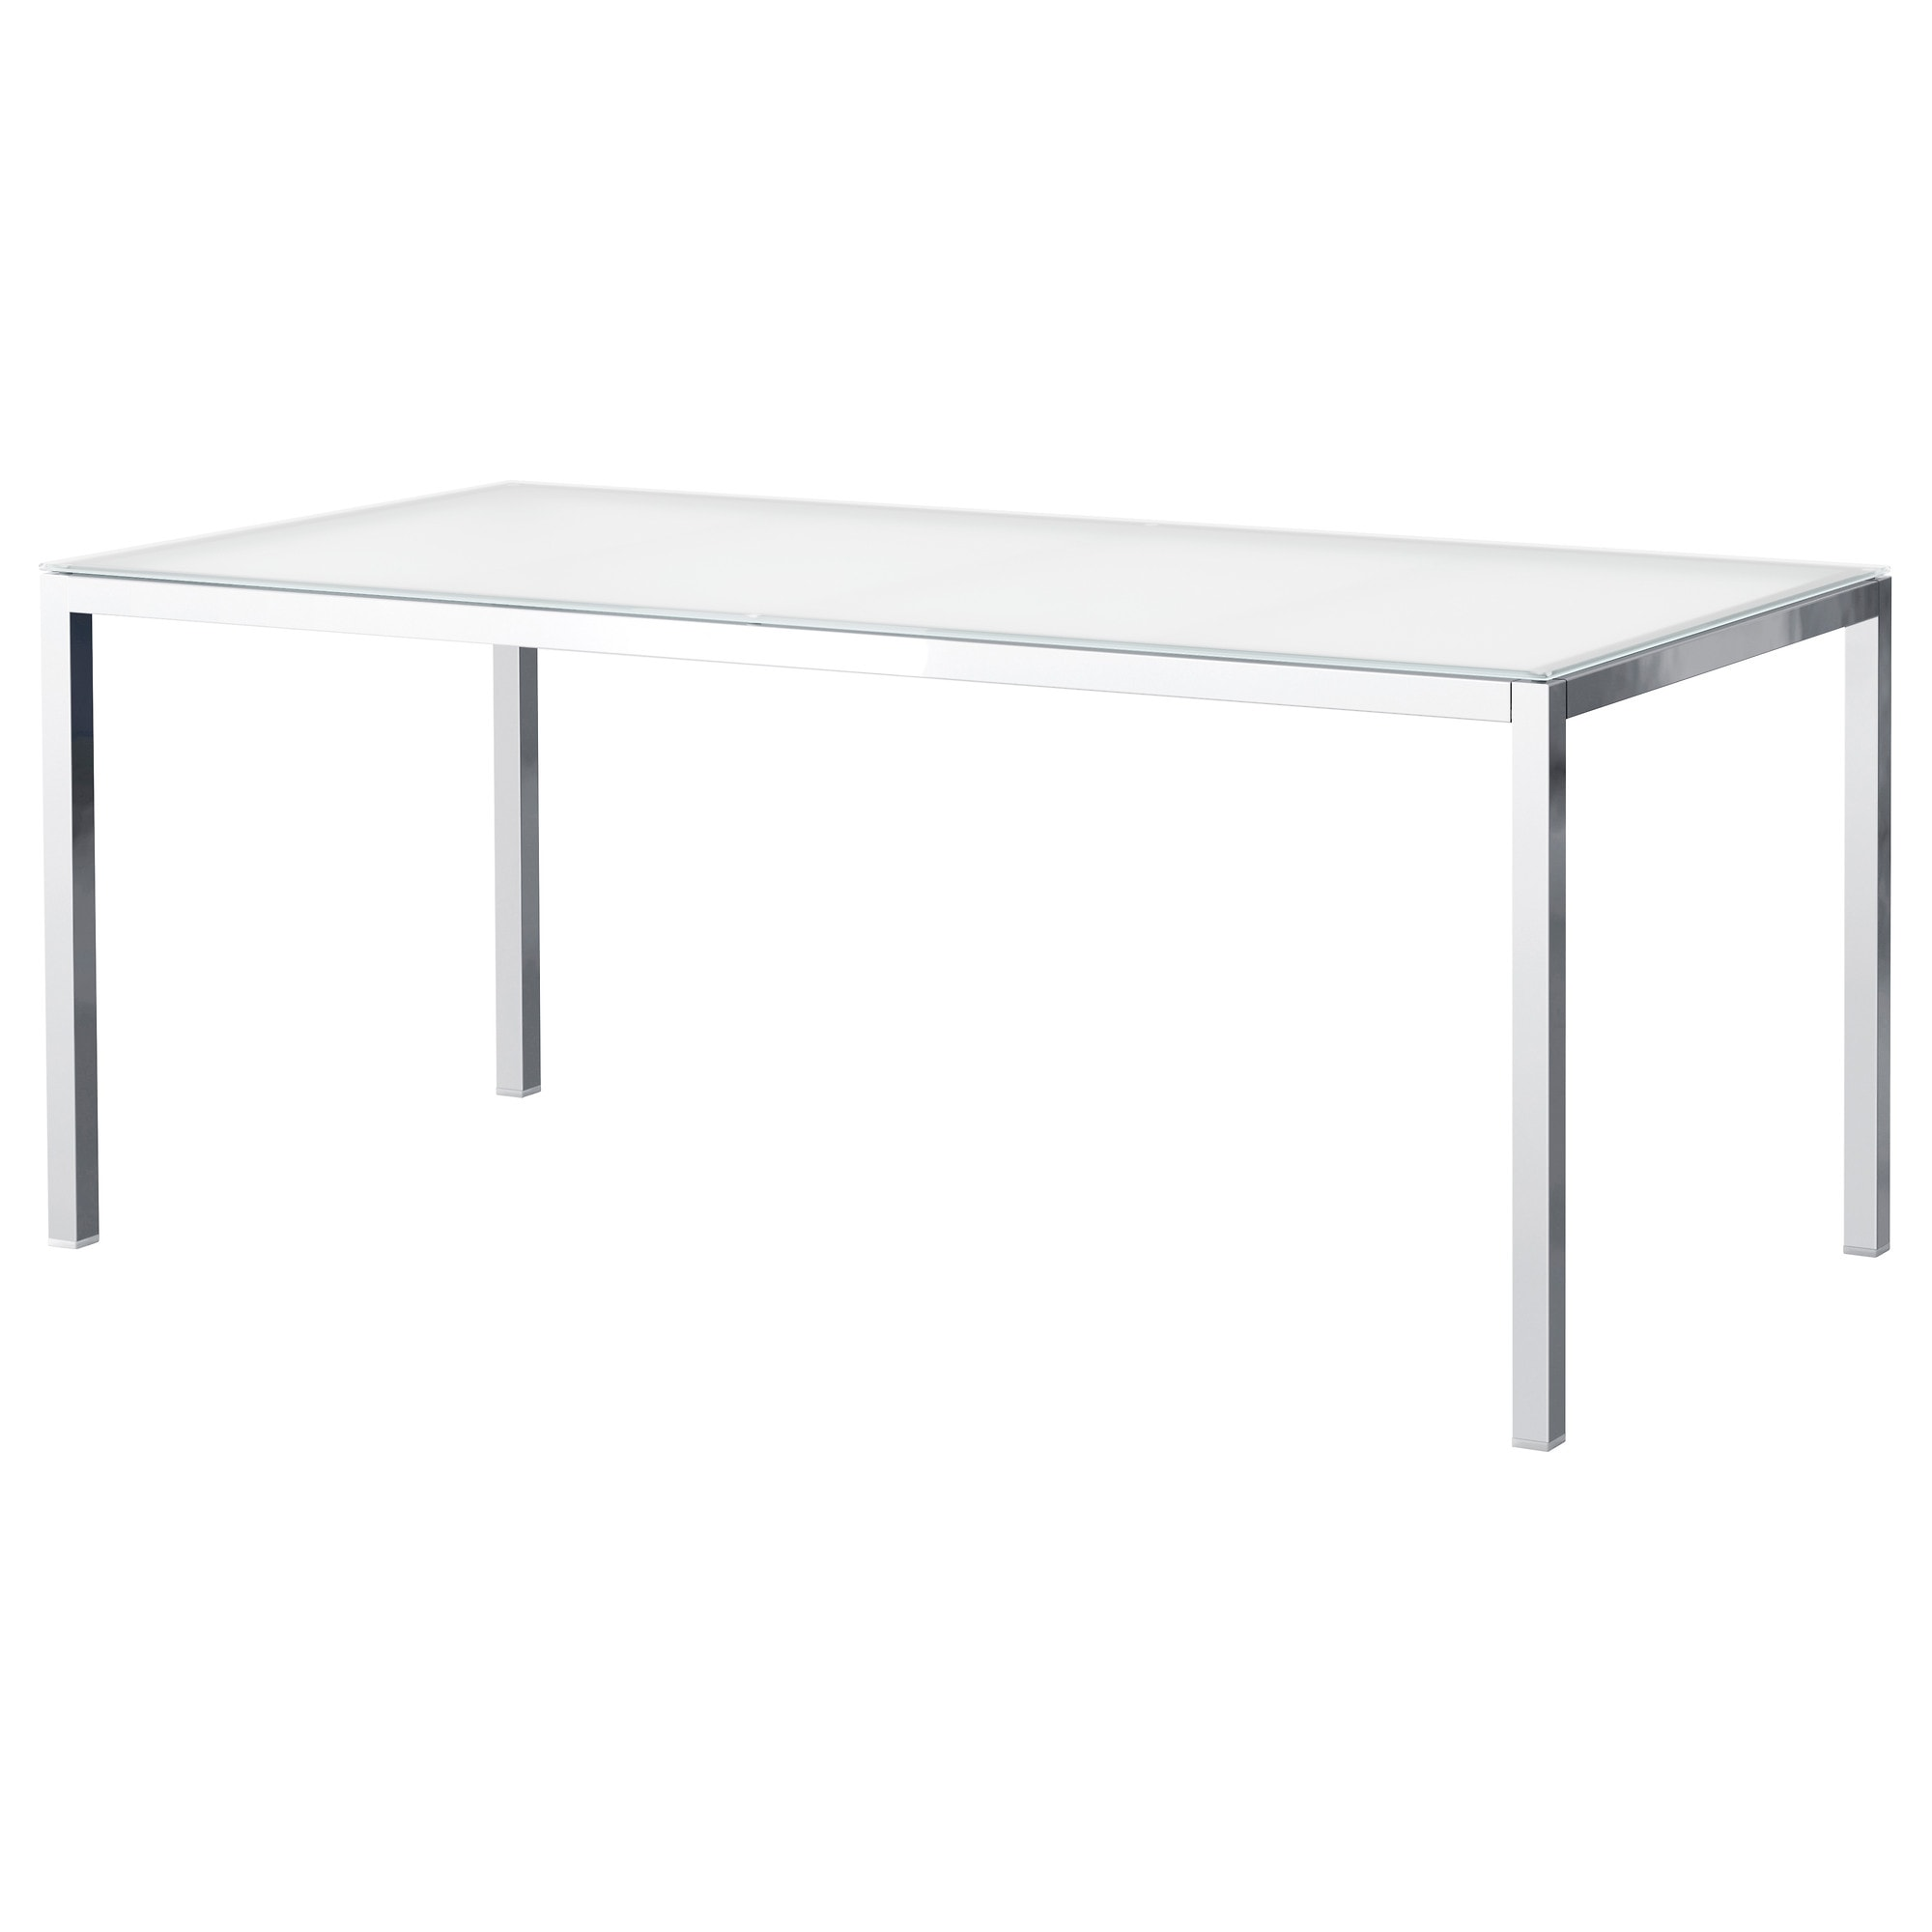 Table en verre salle a manger ikea table de lit for Ikea table a manger